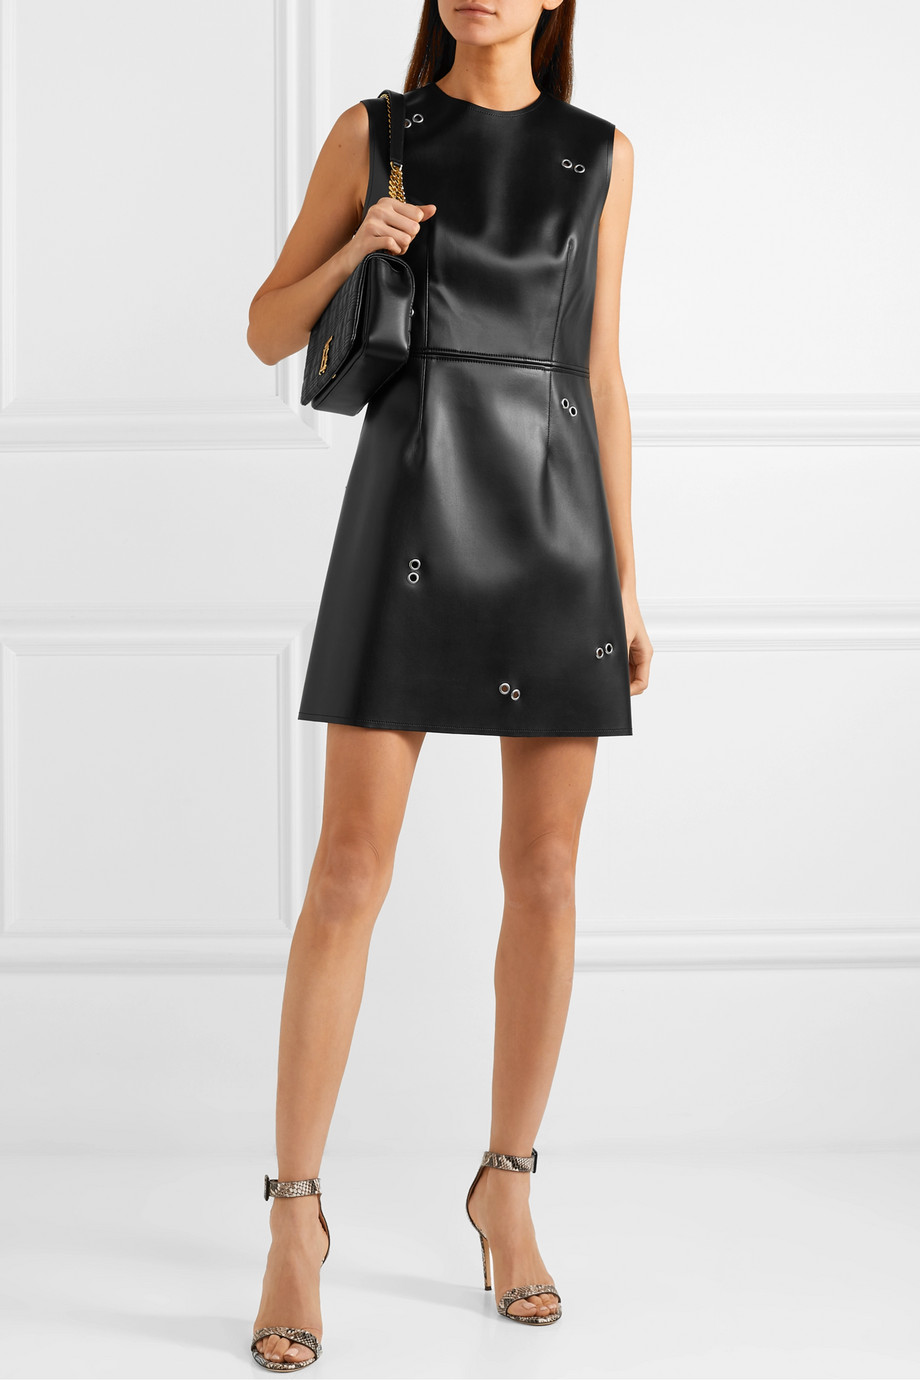 Burberry Embellished faux leather mini dress